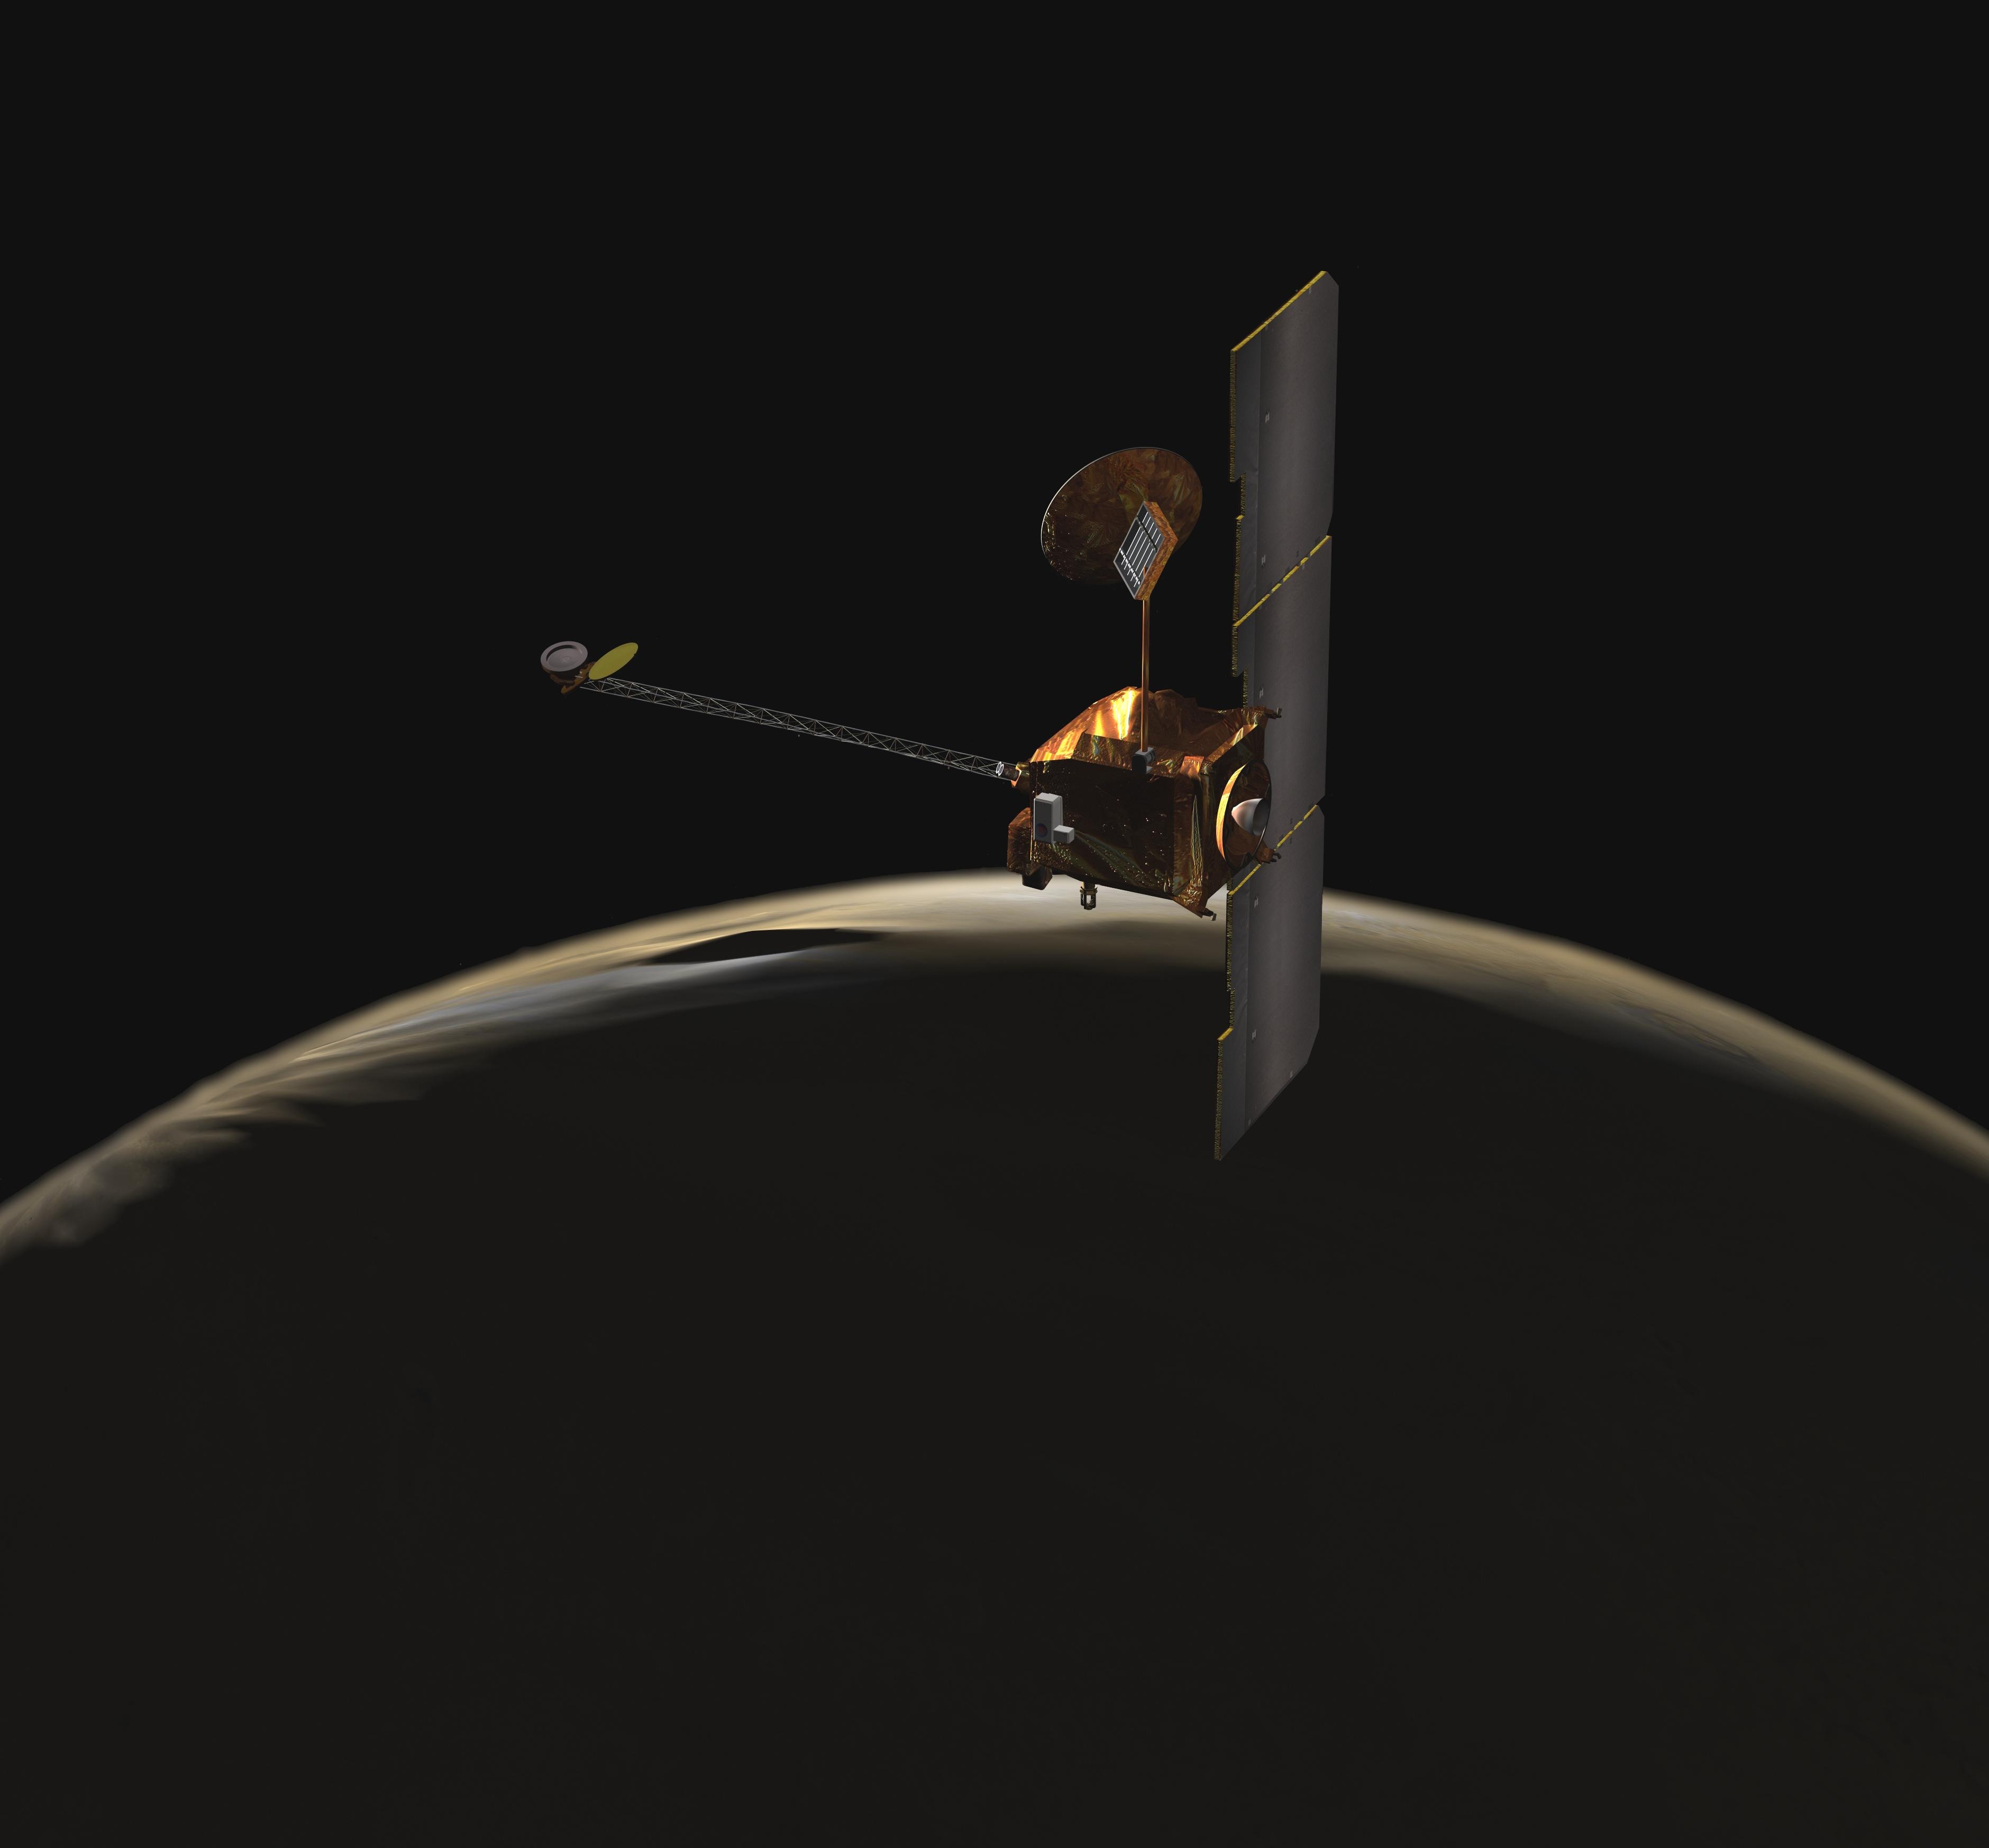 Nasa Spacecraft Nears 60000th Lap Around Mars No Pit Stops Infrared Video Of A Hovering Lander Moon To Nasas Odyssey